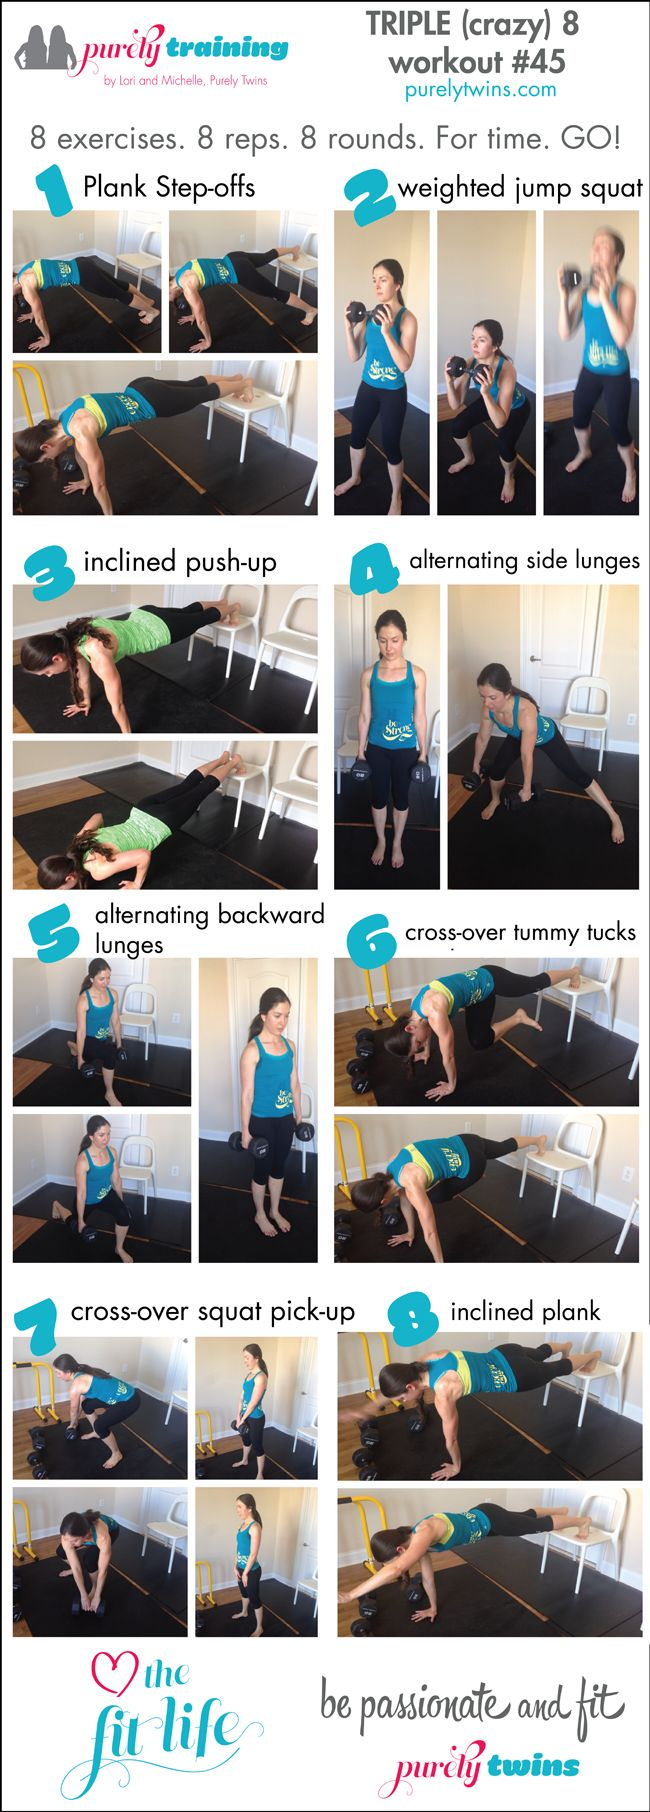 Triple 8 purely training FULL BODY workout that you do 8 exercises 8 reps and for 8 rounds. A time challenge workout where you just need a chair and free weights. Perfect to do at home. Download your printable and workout with us.